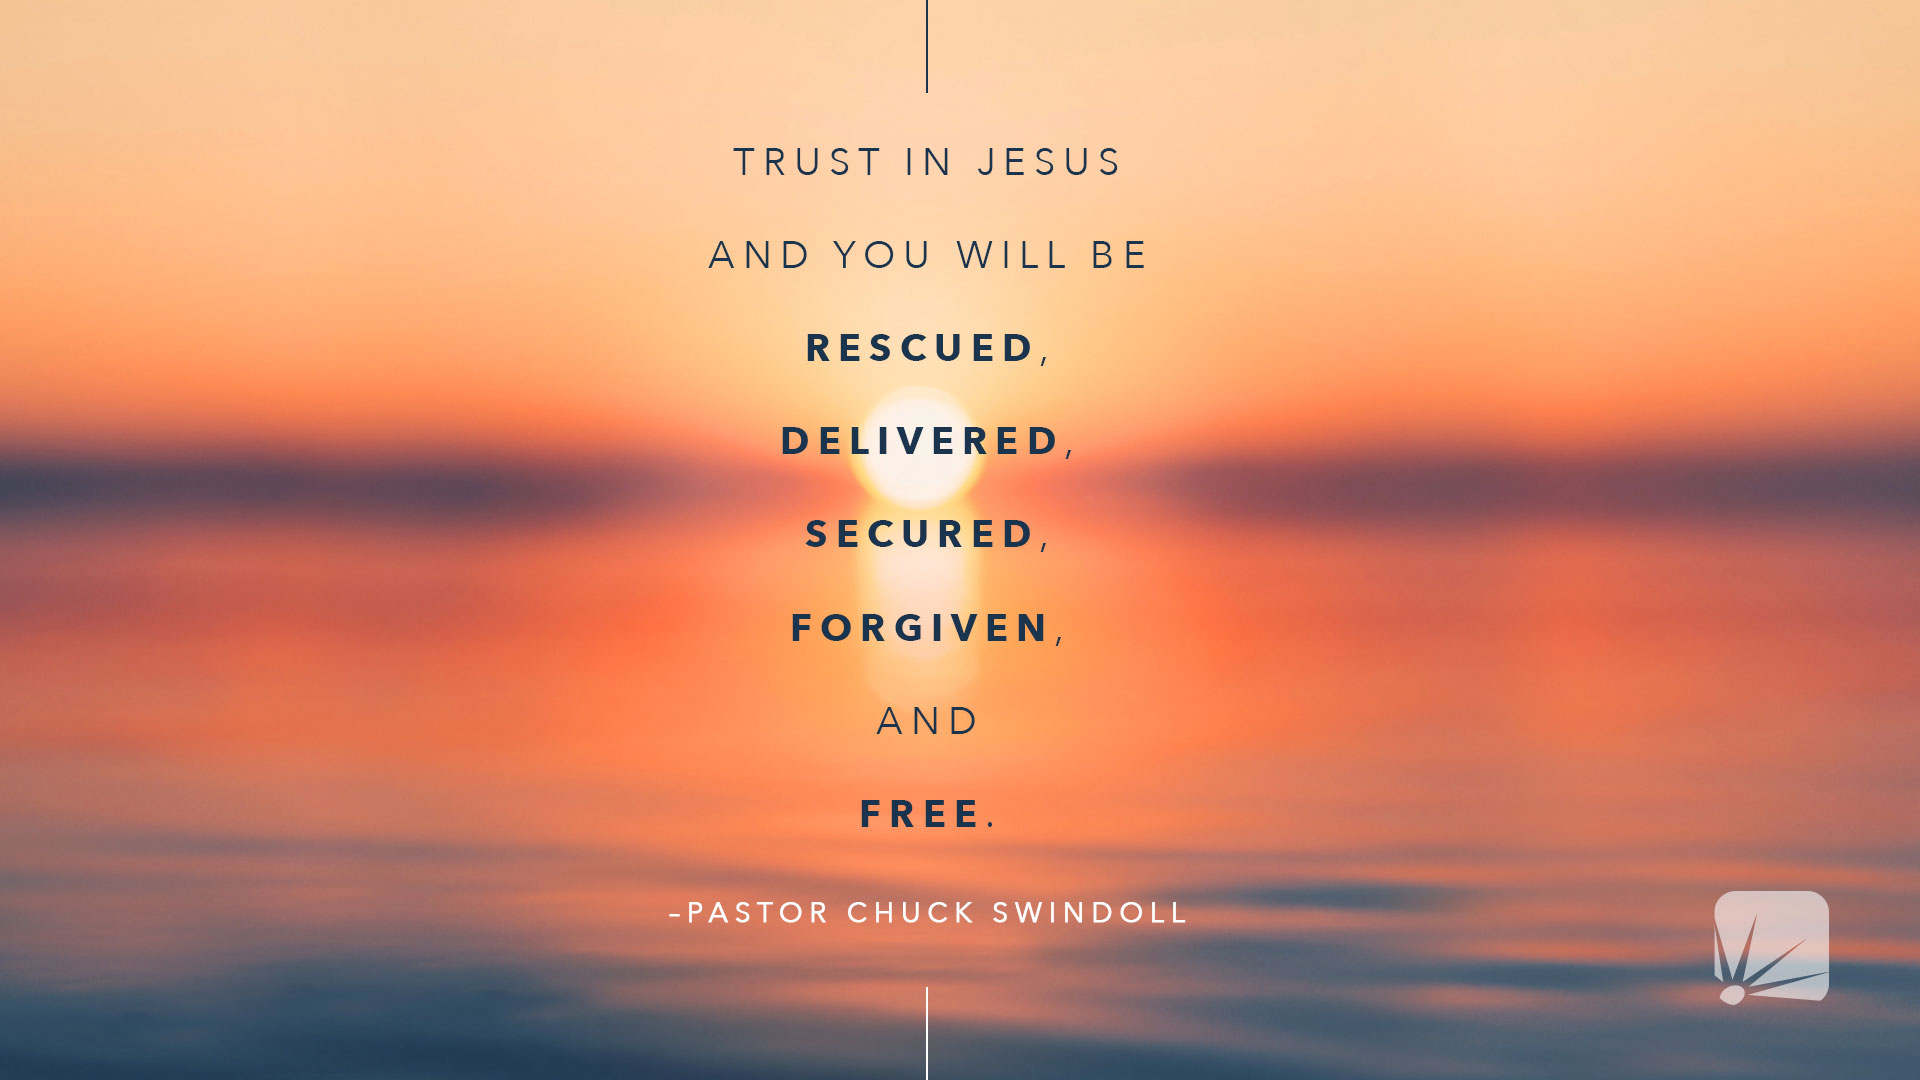 Trust in Jesus and you will be rescued, delivered, secured, forgiven, and free.